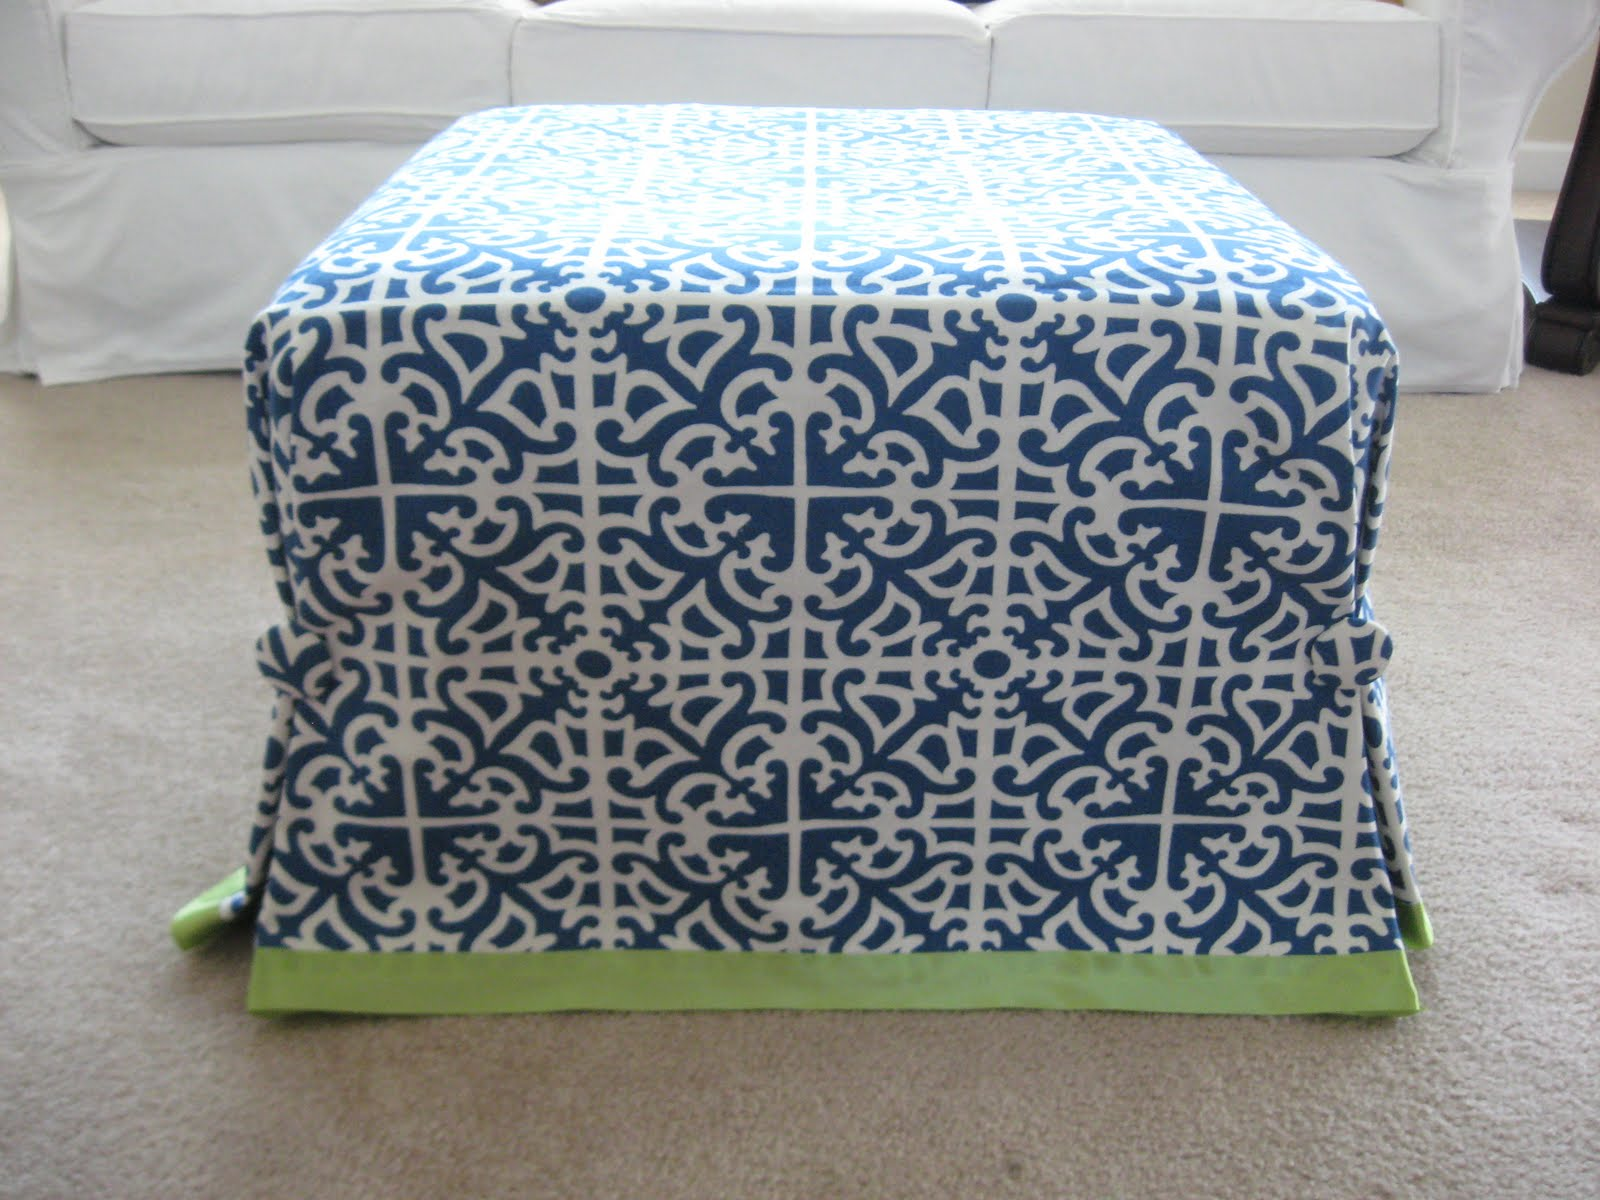 Slipcovers For Ottomans Home Design